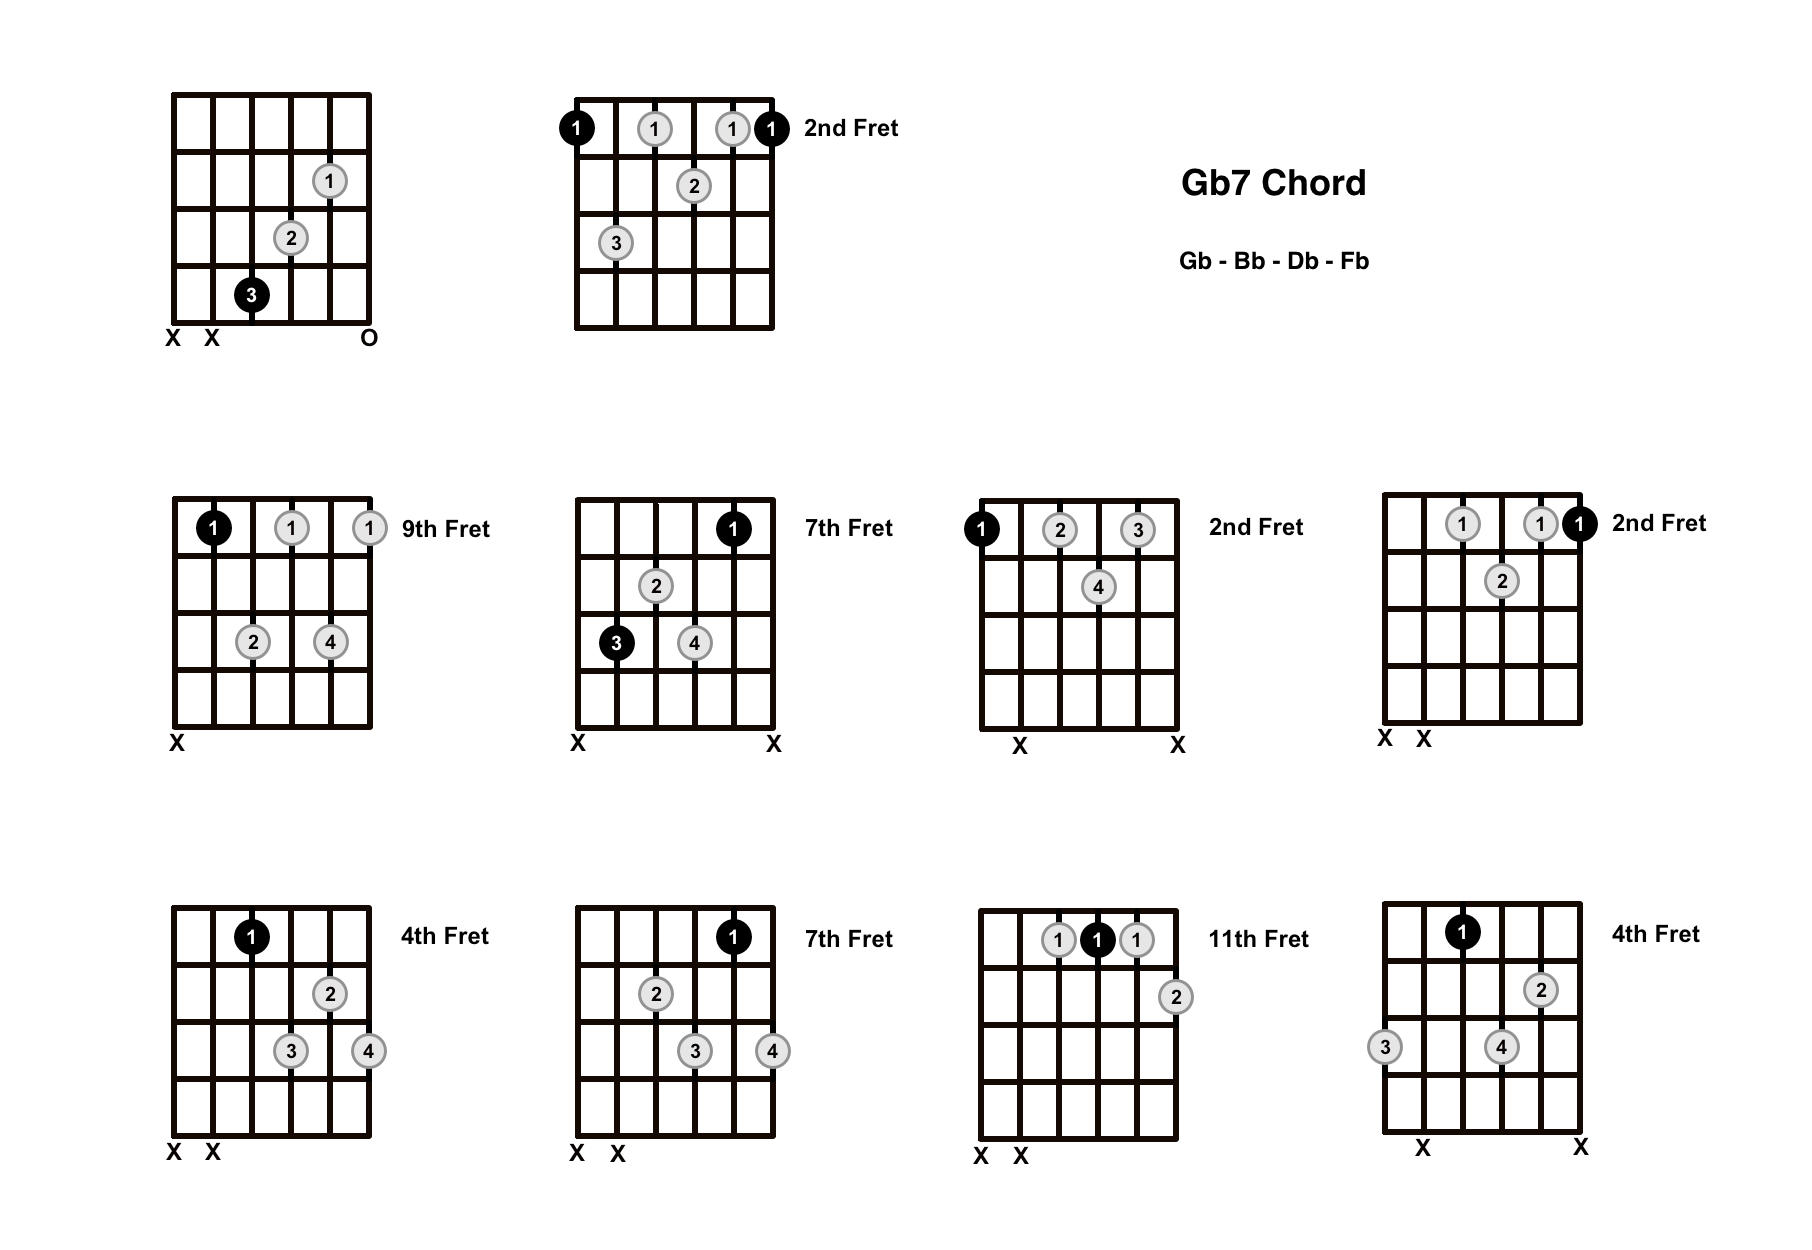 Gb7 Chord On The Guitar (G Flat Dominant 7) – Diagrams, Finger Positions and Theory